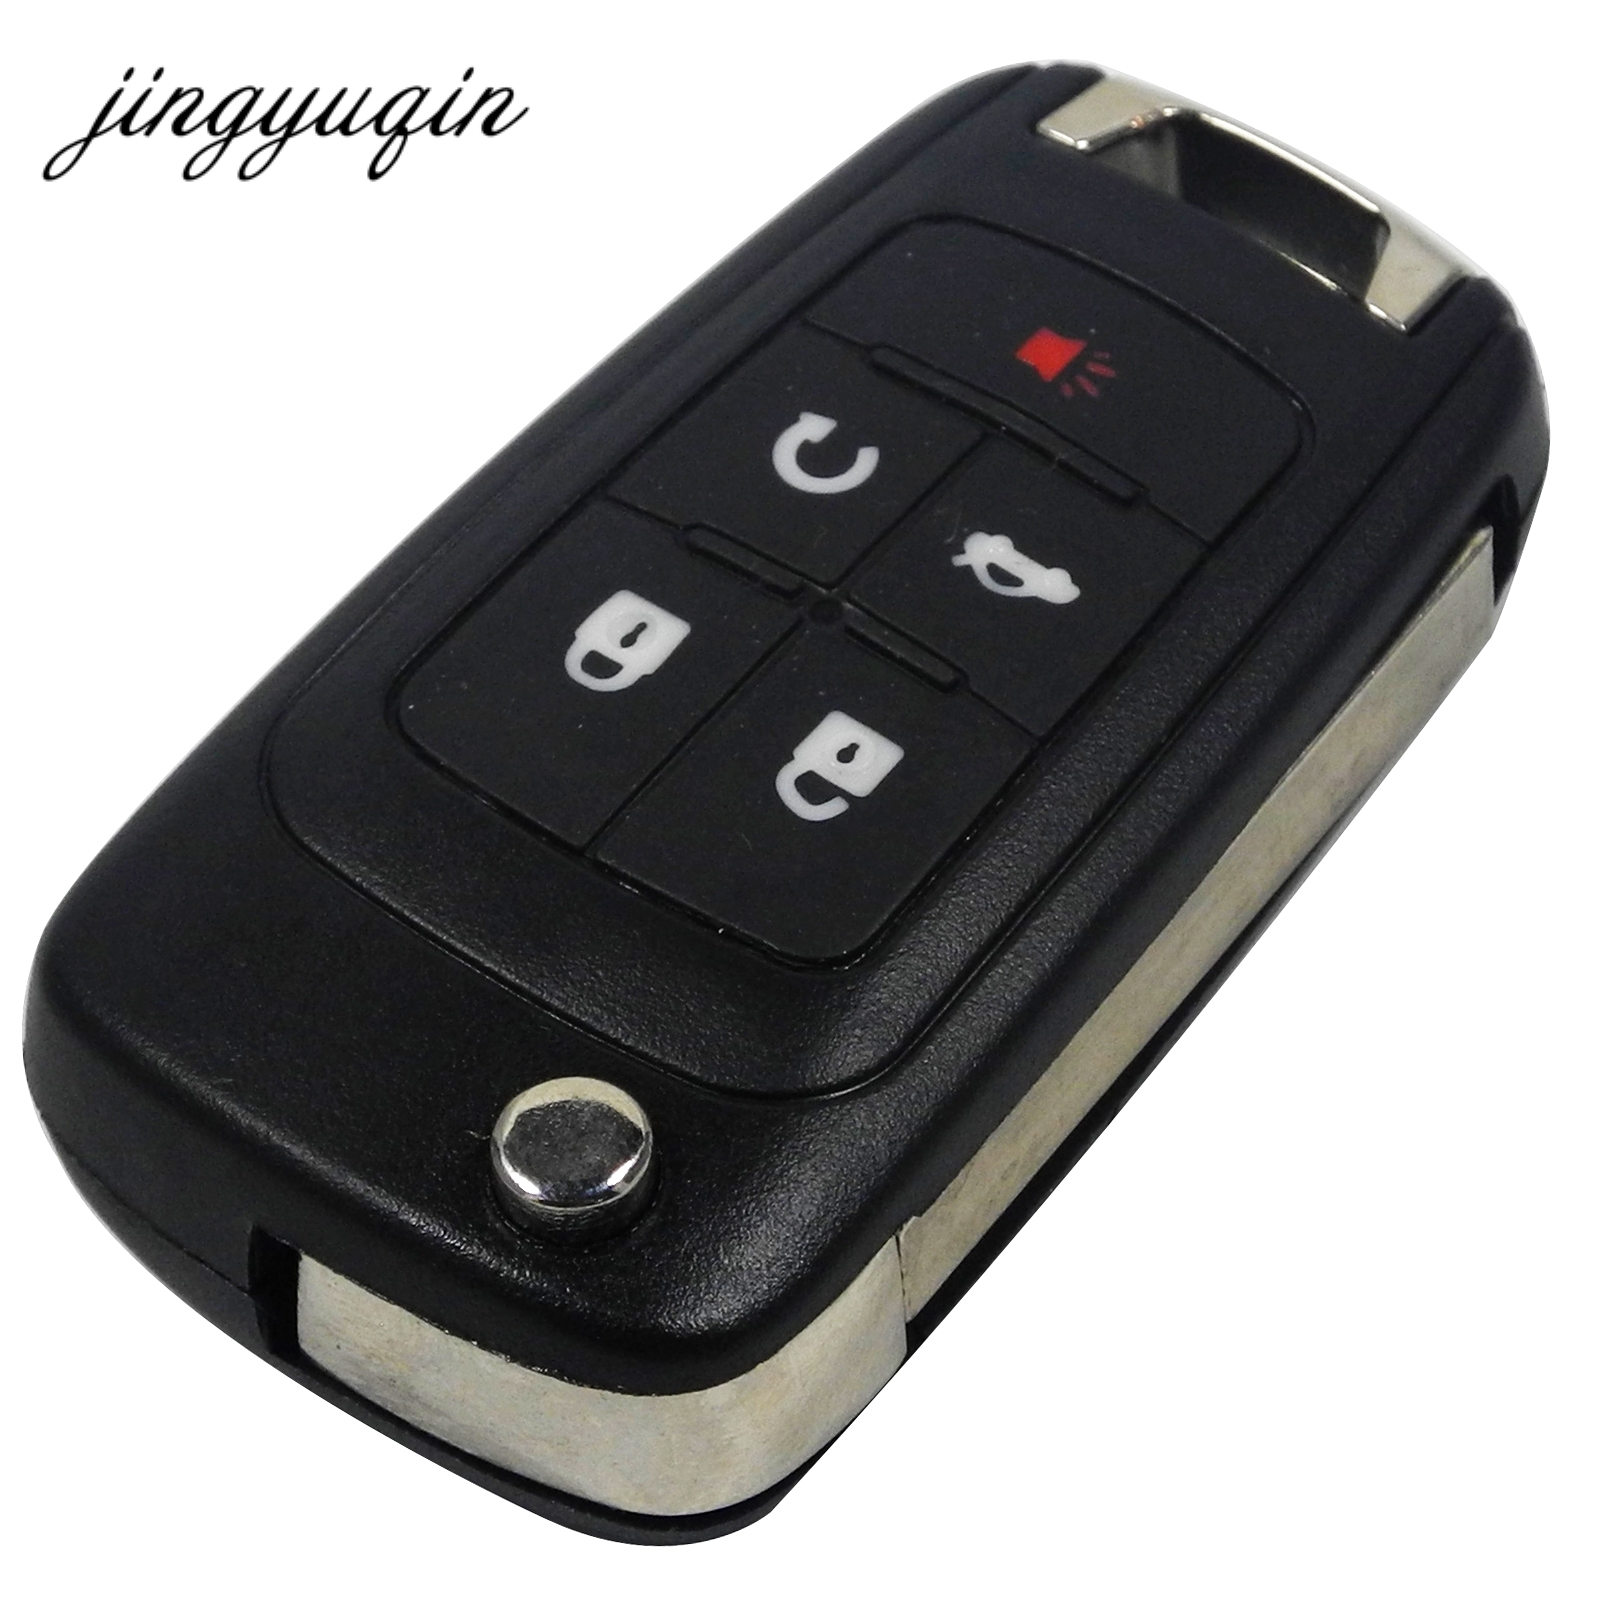 jingyuqin Flip Folding Remote Key Shell 5 BTN for Vauxhall Opel for Buick Excelle Verano LaCrosse Regal Housing Fob Casejingyuqin Flip Folding Remote Key Shell 5 BTN for Vauxhall Opel for Buick Excelle Verano LaCrosse Regal Housing Fob Case